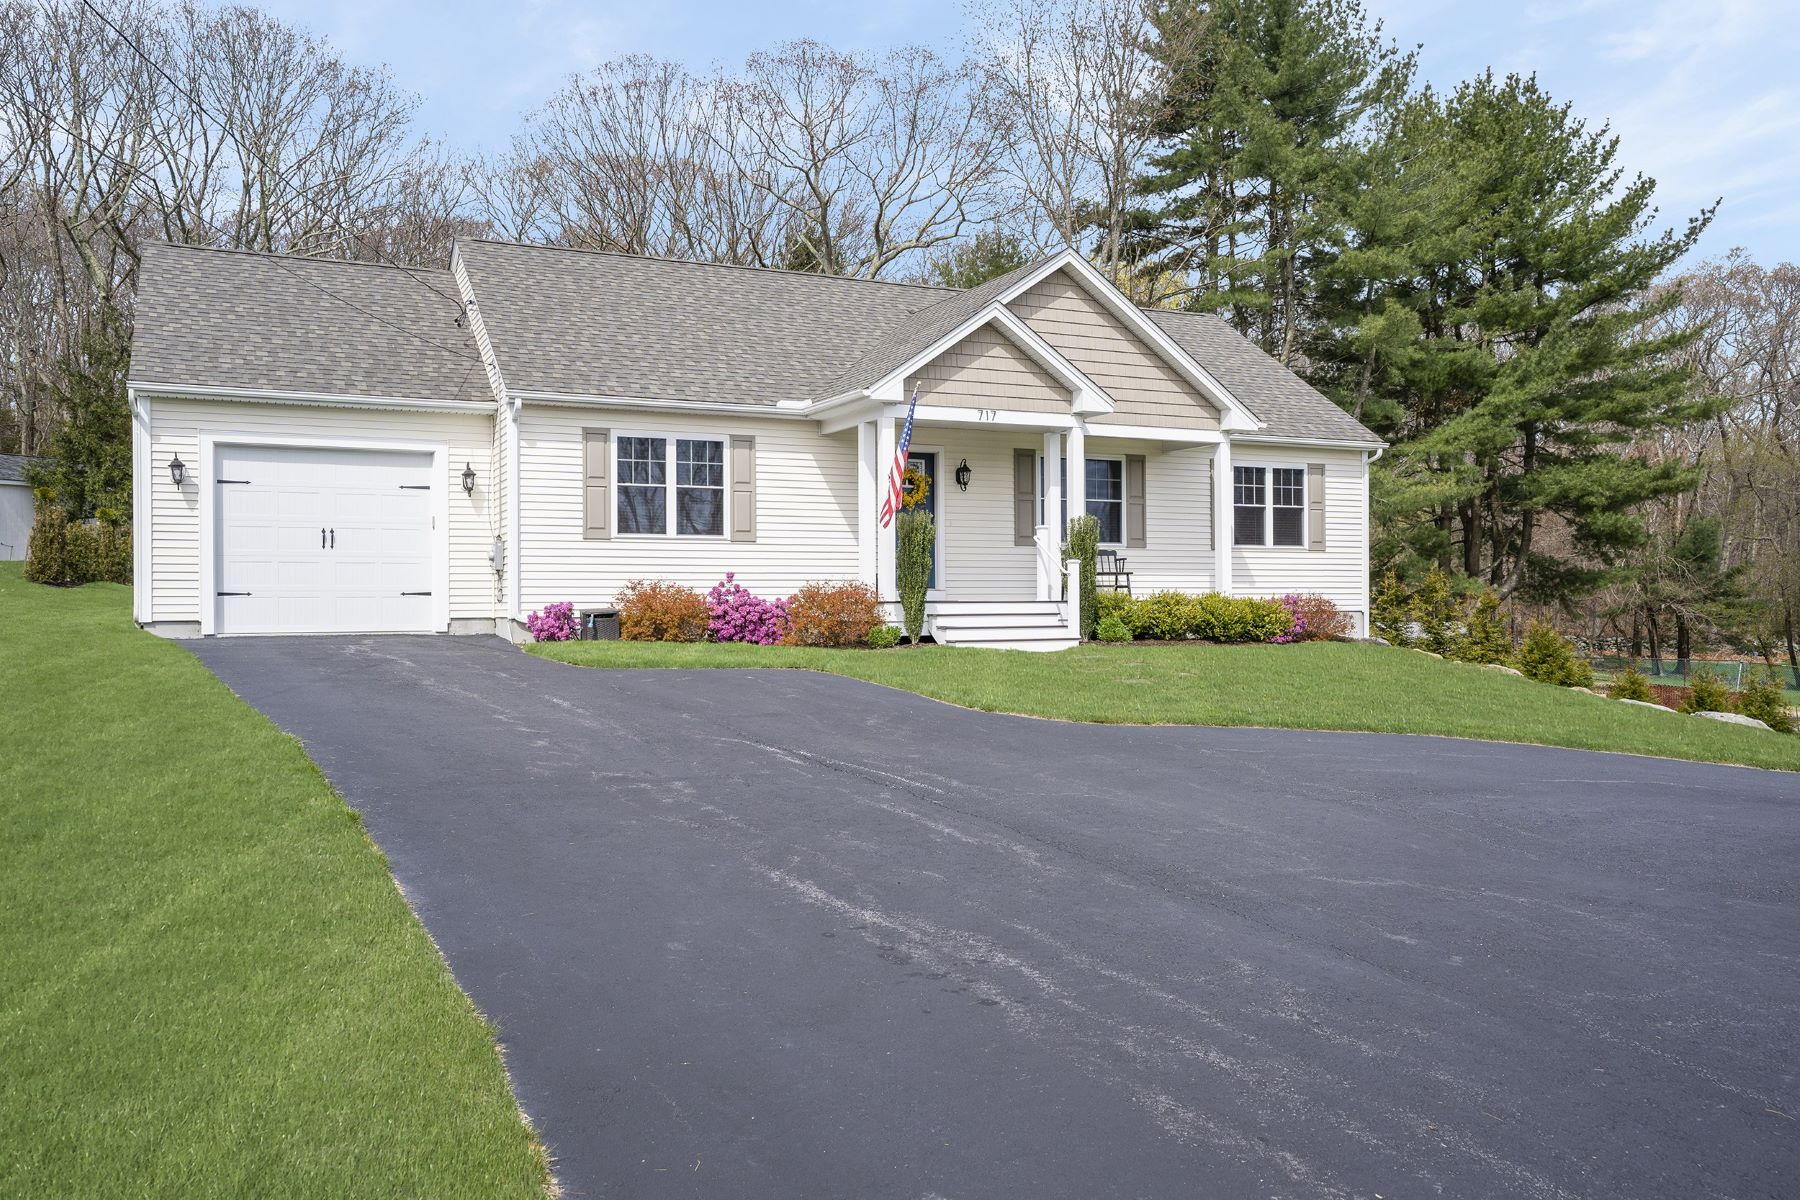 Single Family Homes for Sale at 717 Commonwealth Avenue Warwick, Rhode Island 02886 United States